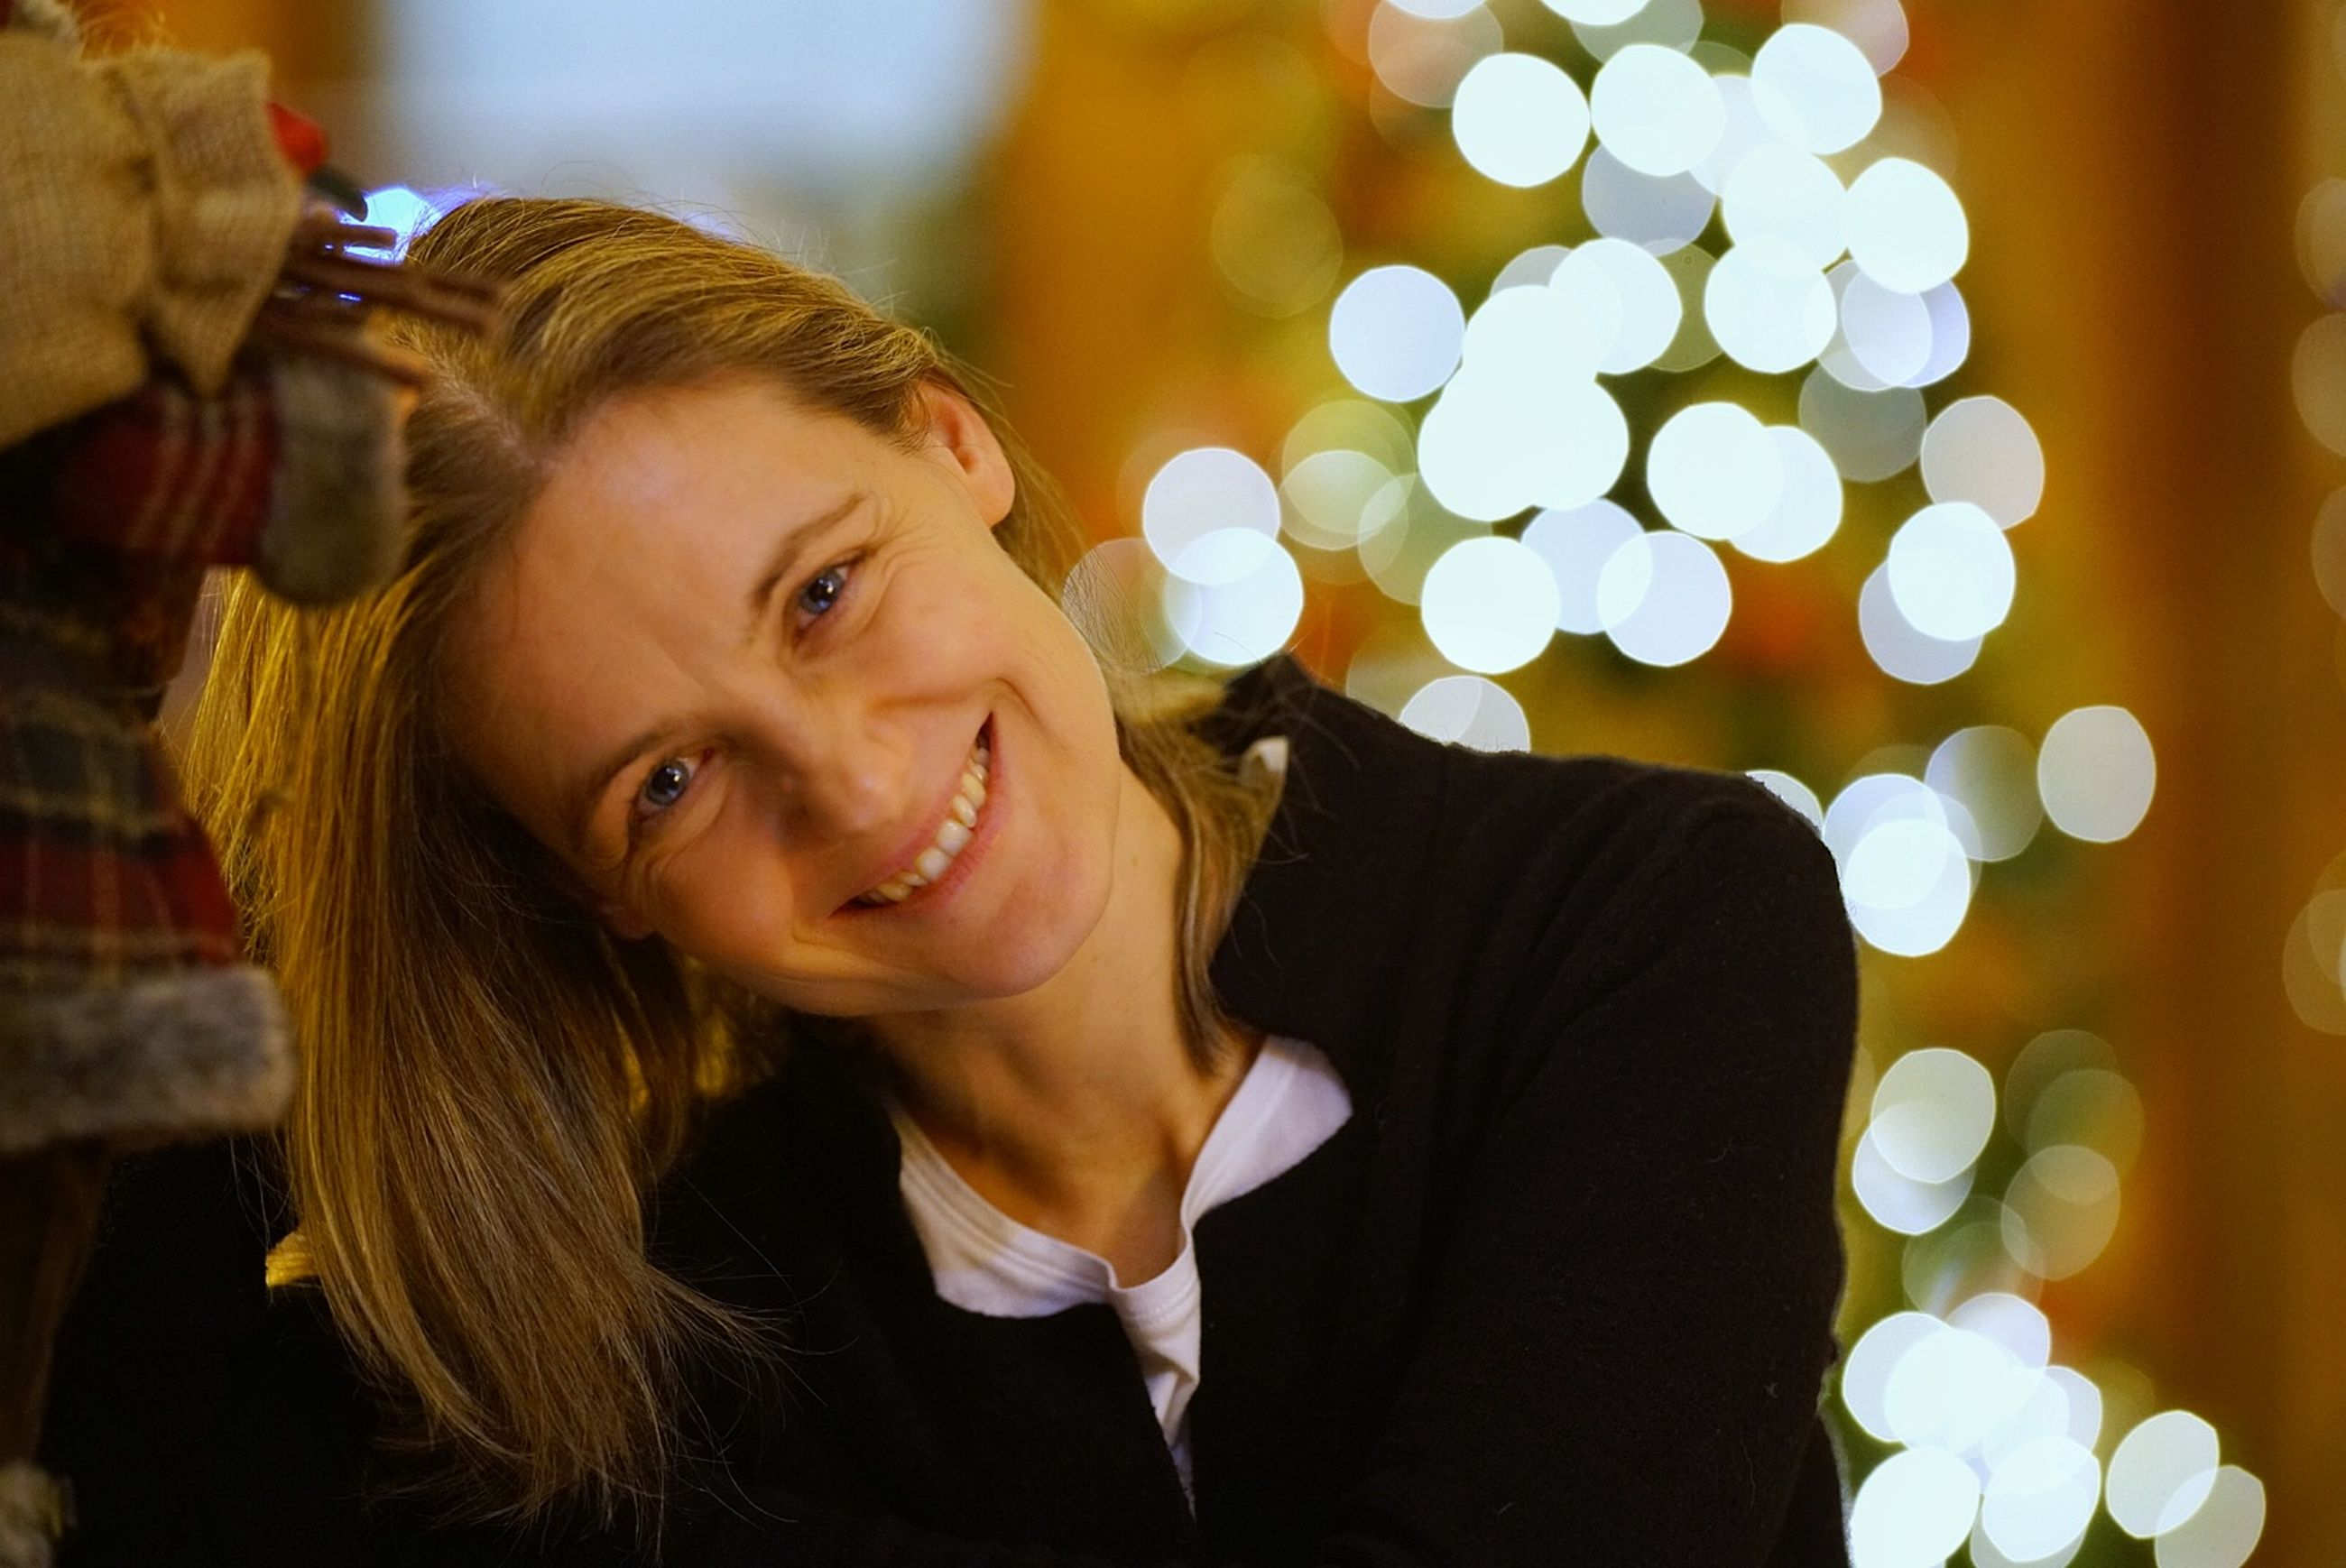 smiling, portrait, happiness, emotion, one person, christmas, women, headshot, young women, young adult, illuminated, focus on foreground, hair, lifestyles, real people, beauty, looking at camera, christmas tree, celebration, beautiful woman, hairstyle